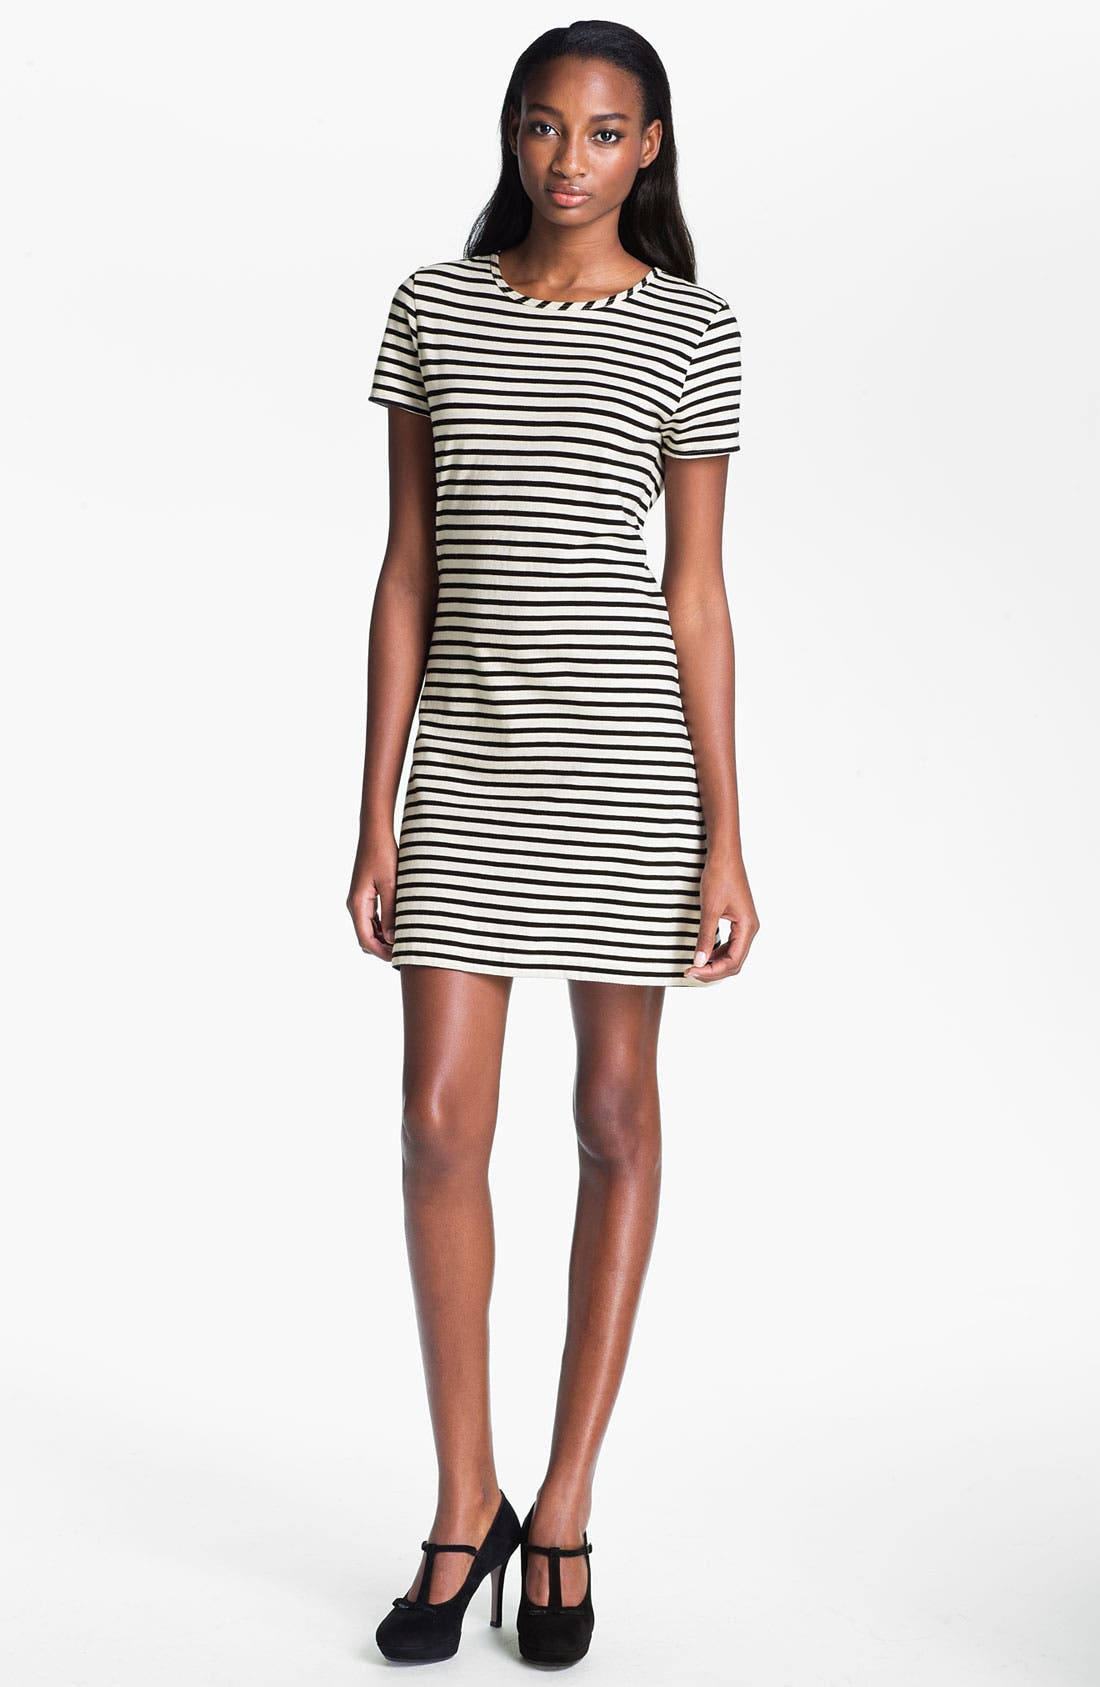 Main Image - Skaist-Taylor Stripe Cotton T-Shirt Dress